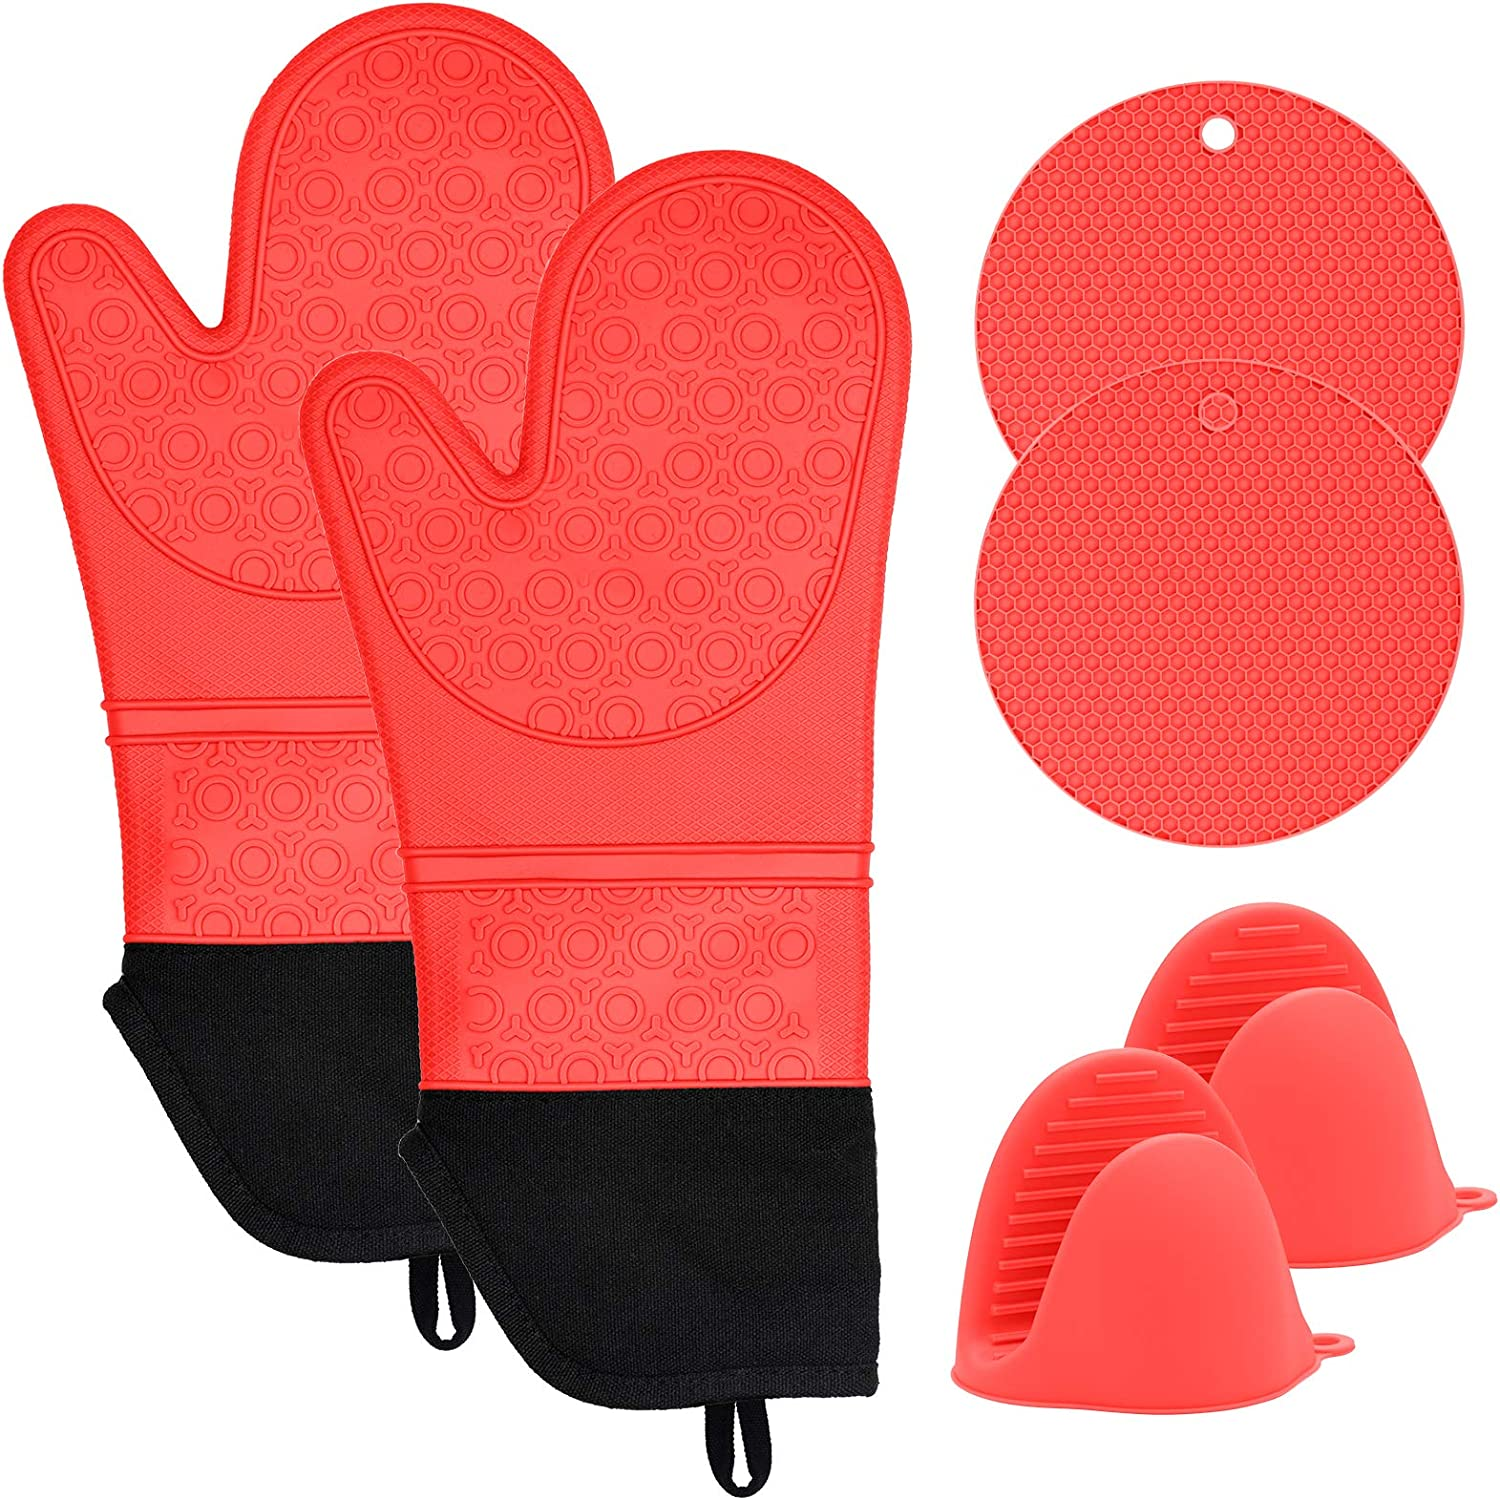 Silicone Oven Mitts and Pot Holders Set, 6 Piece Set with 2 Hot Pads, Heat Resistant to 450℉-Extra Long 15 Inch Professional Silicone Oven Mitts for Grilling Cooking Baking(Red)